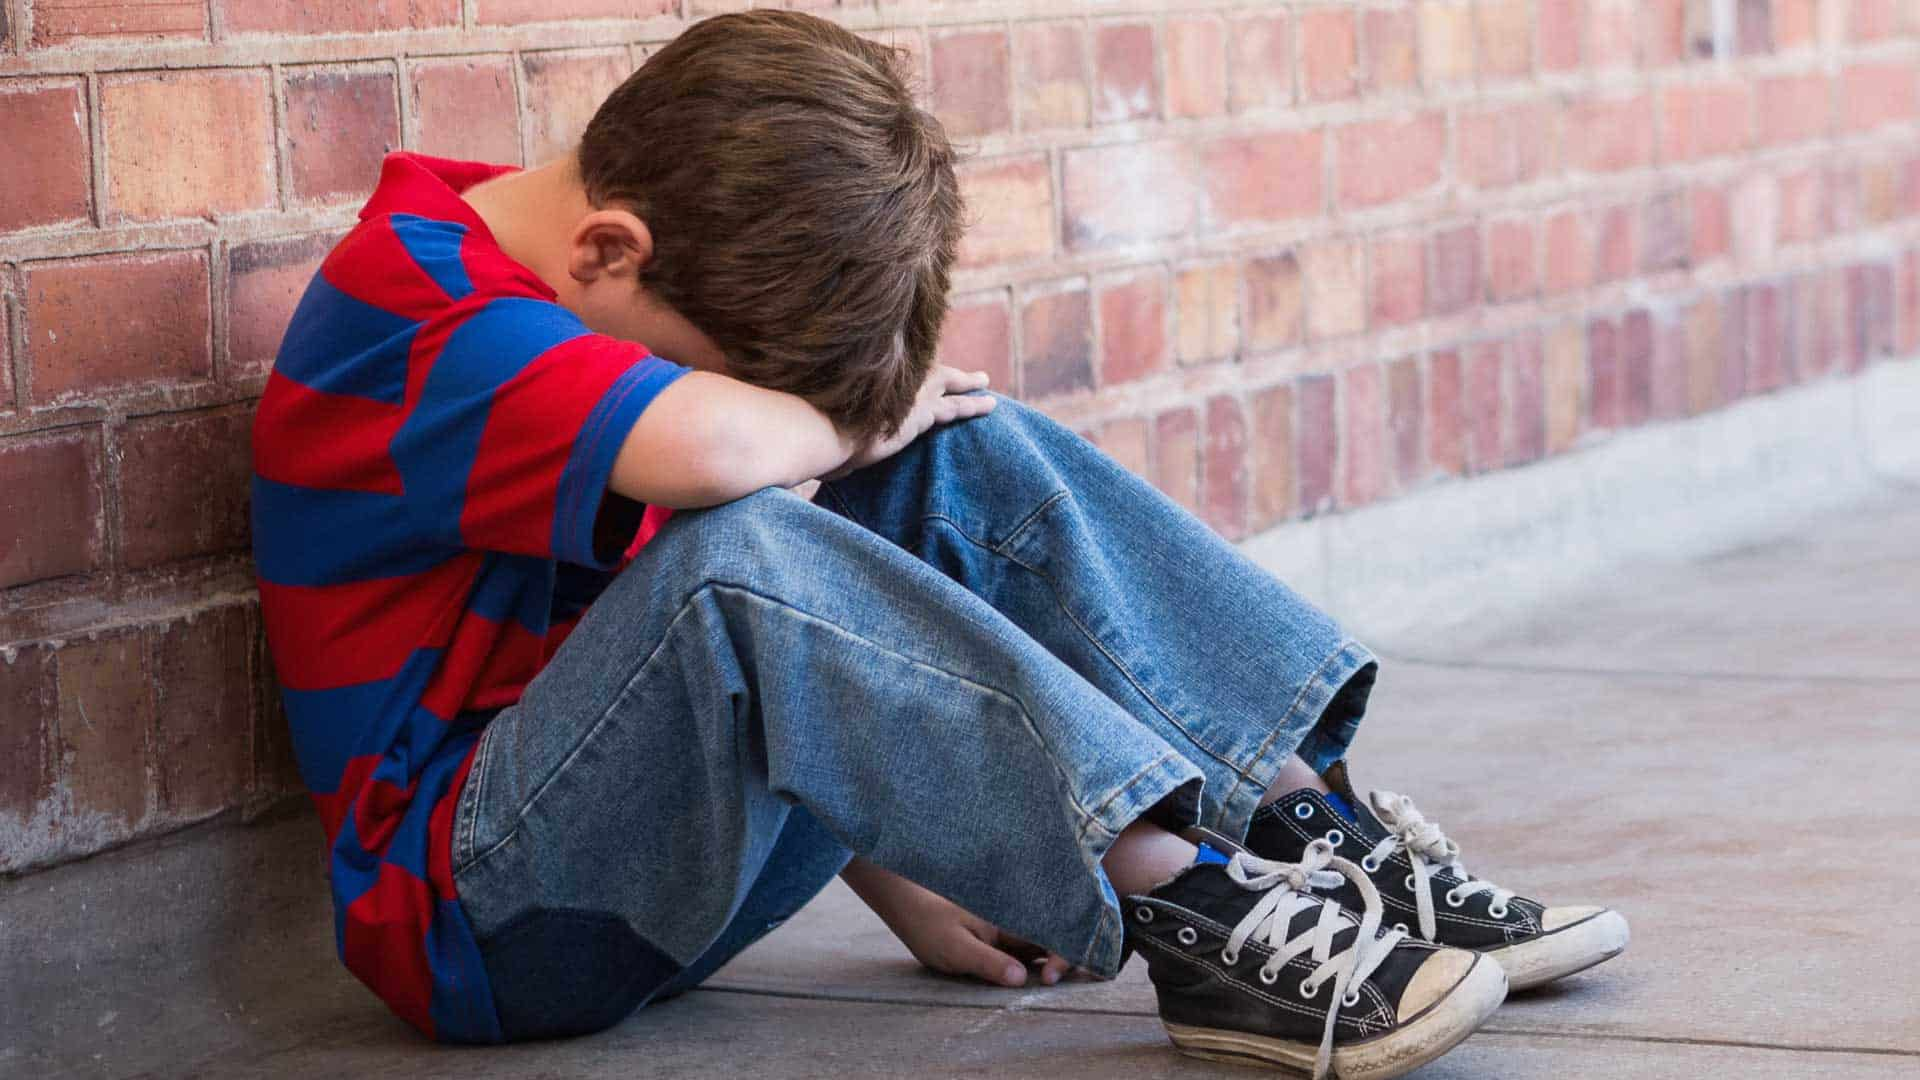 A young boy wearing jeans, sneakers and striped red and blue t-shirt is sitting on the floor next to the brick wall. He put his head on his forearm like he doesn't want to see anything